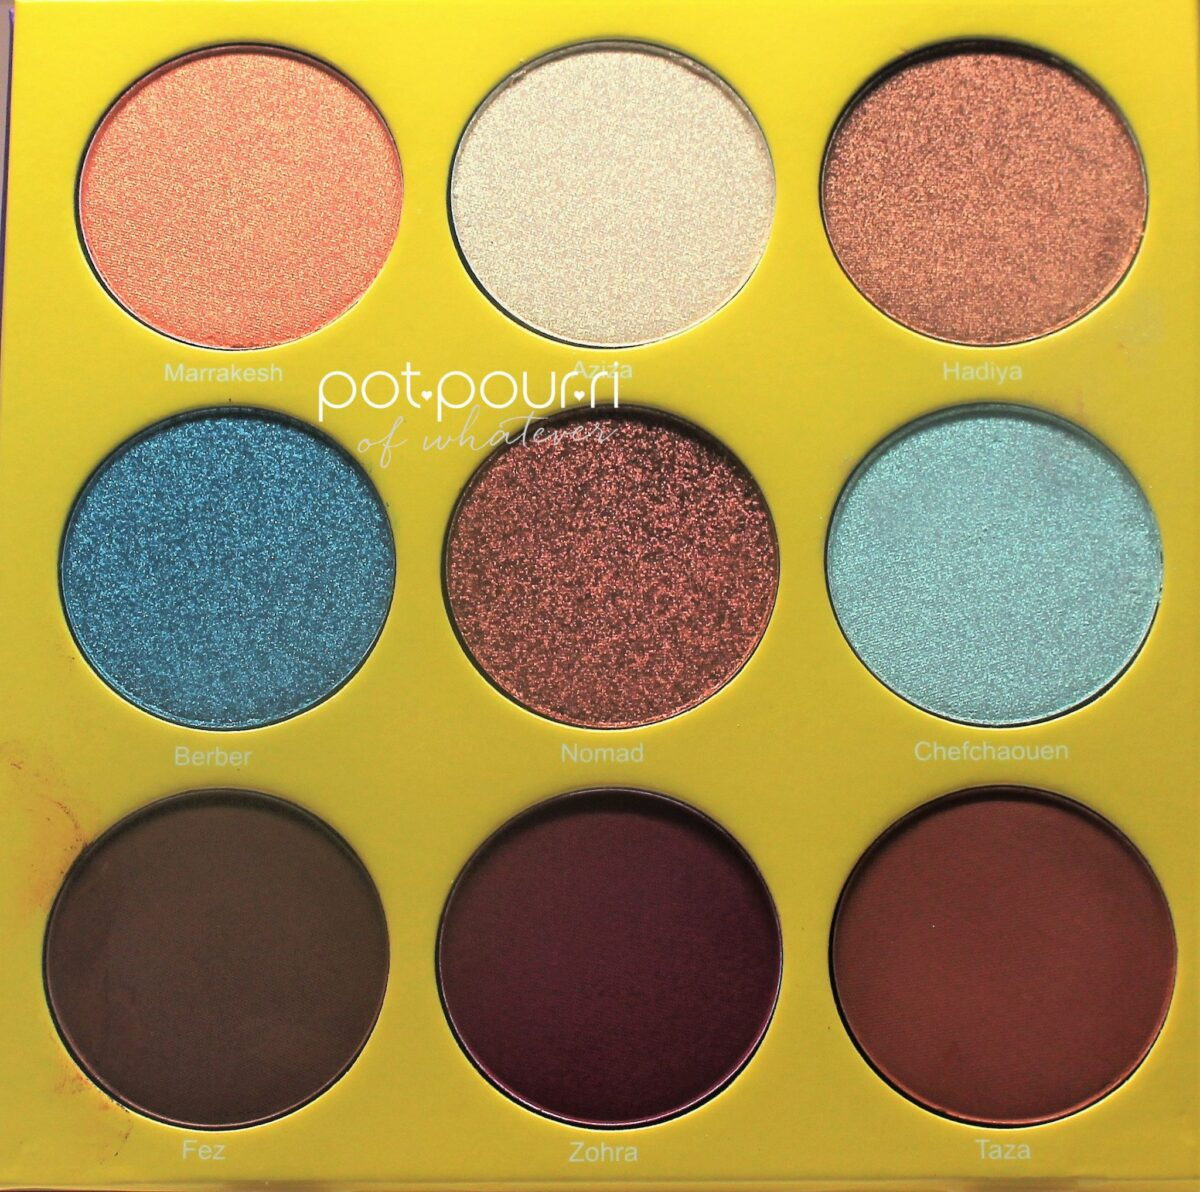 Juvia's-Saharan-11-new-eyeshadow-palette-moroccan-ispired-9-spicey-shades